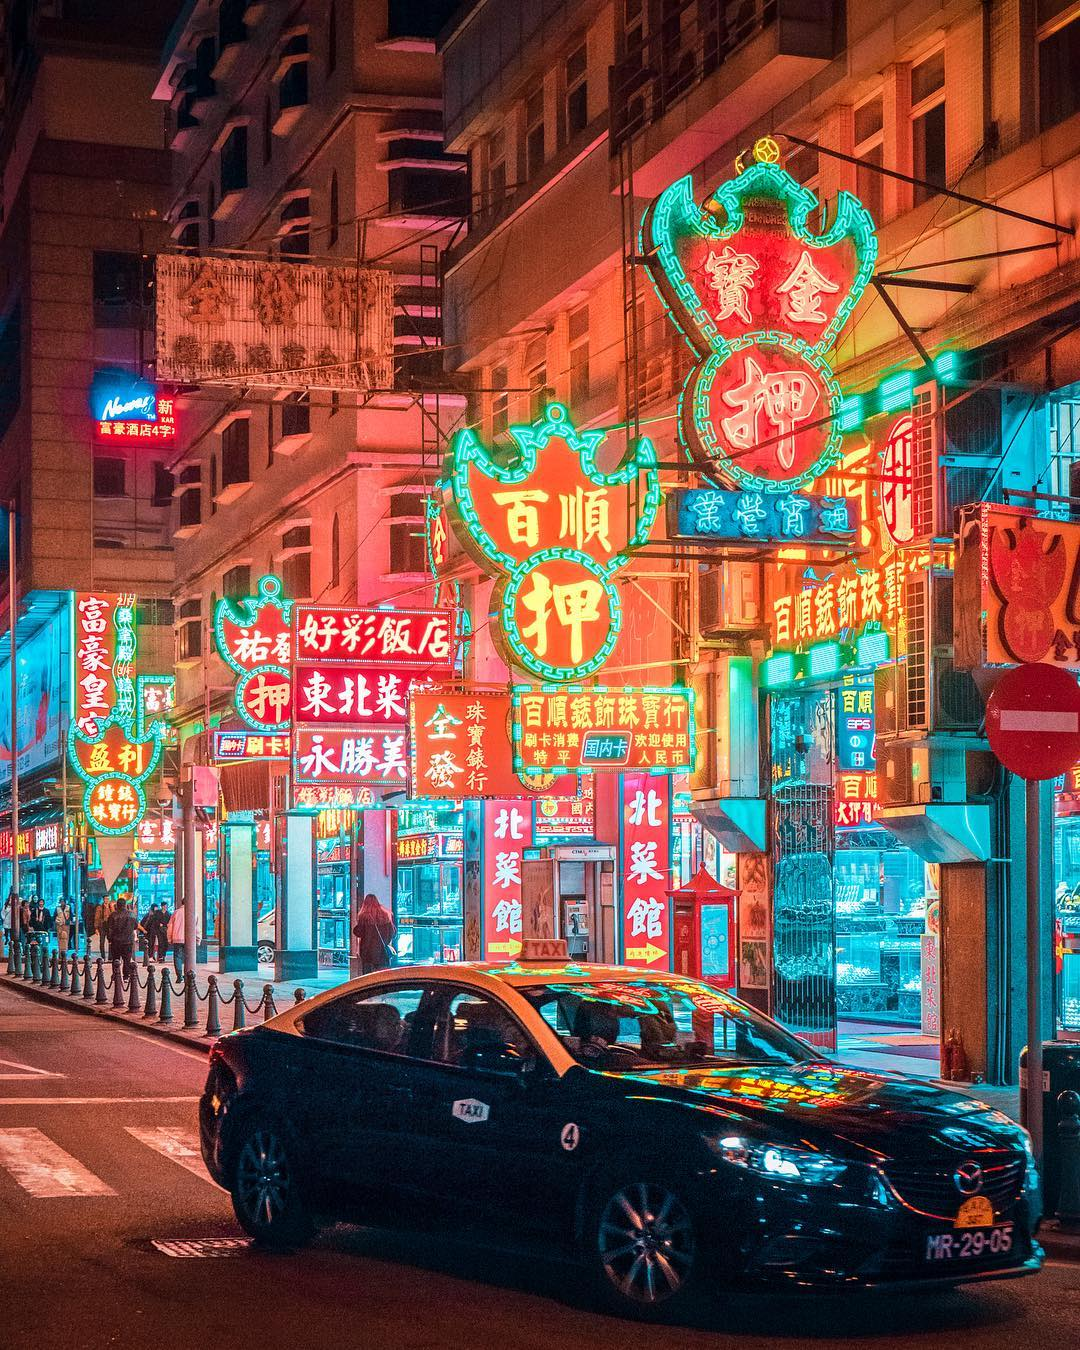 Neon Lights in Hong Kong